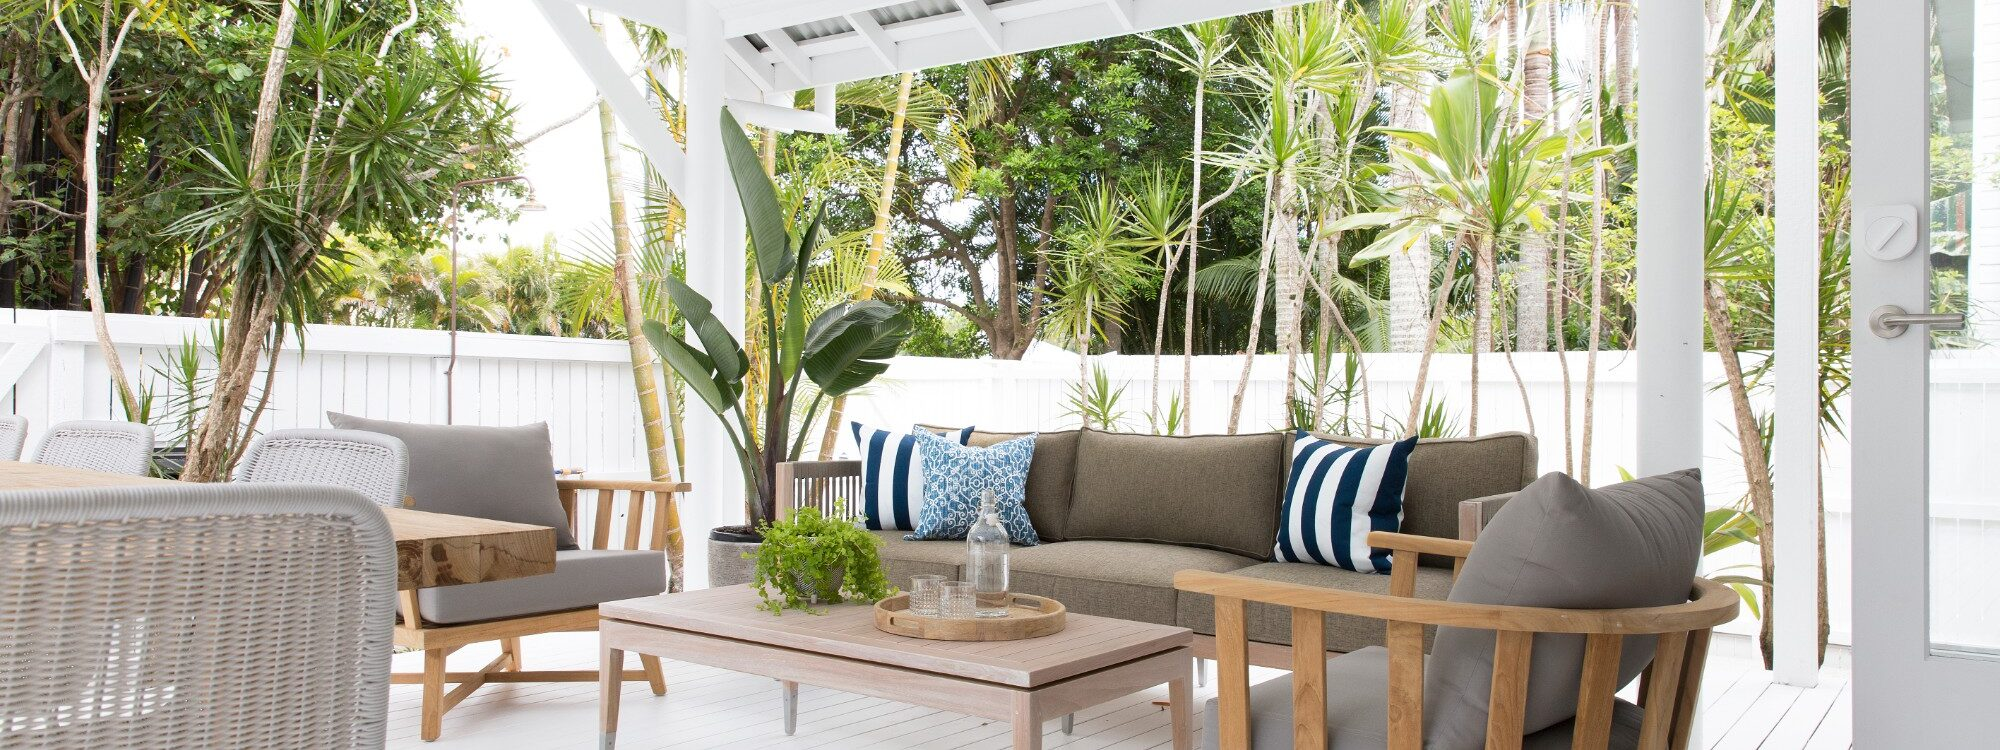 Barrel and Branch - Byron Bay - spacious outdoor deck area